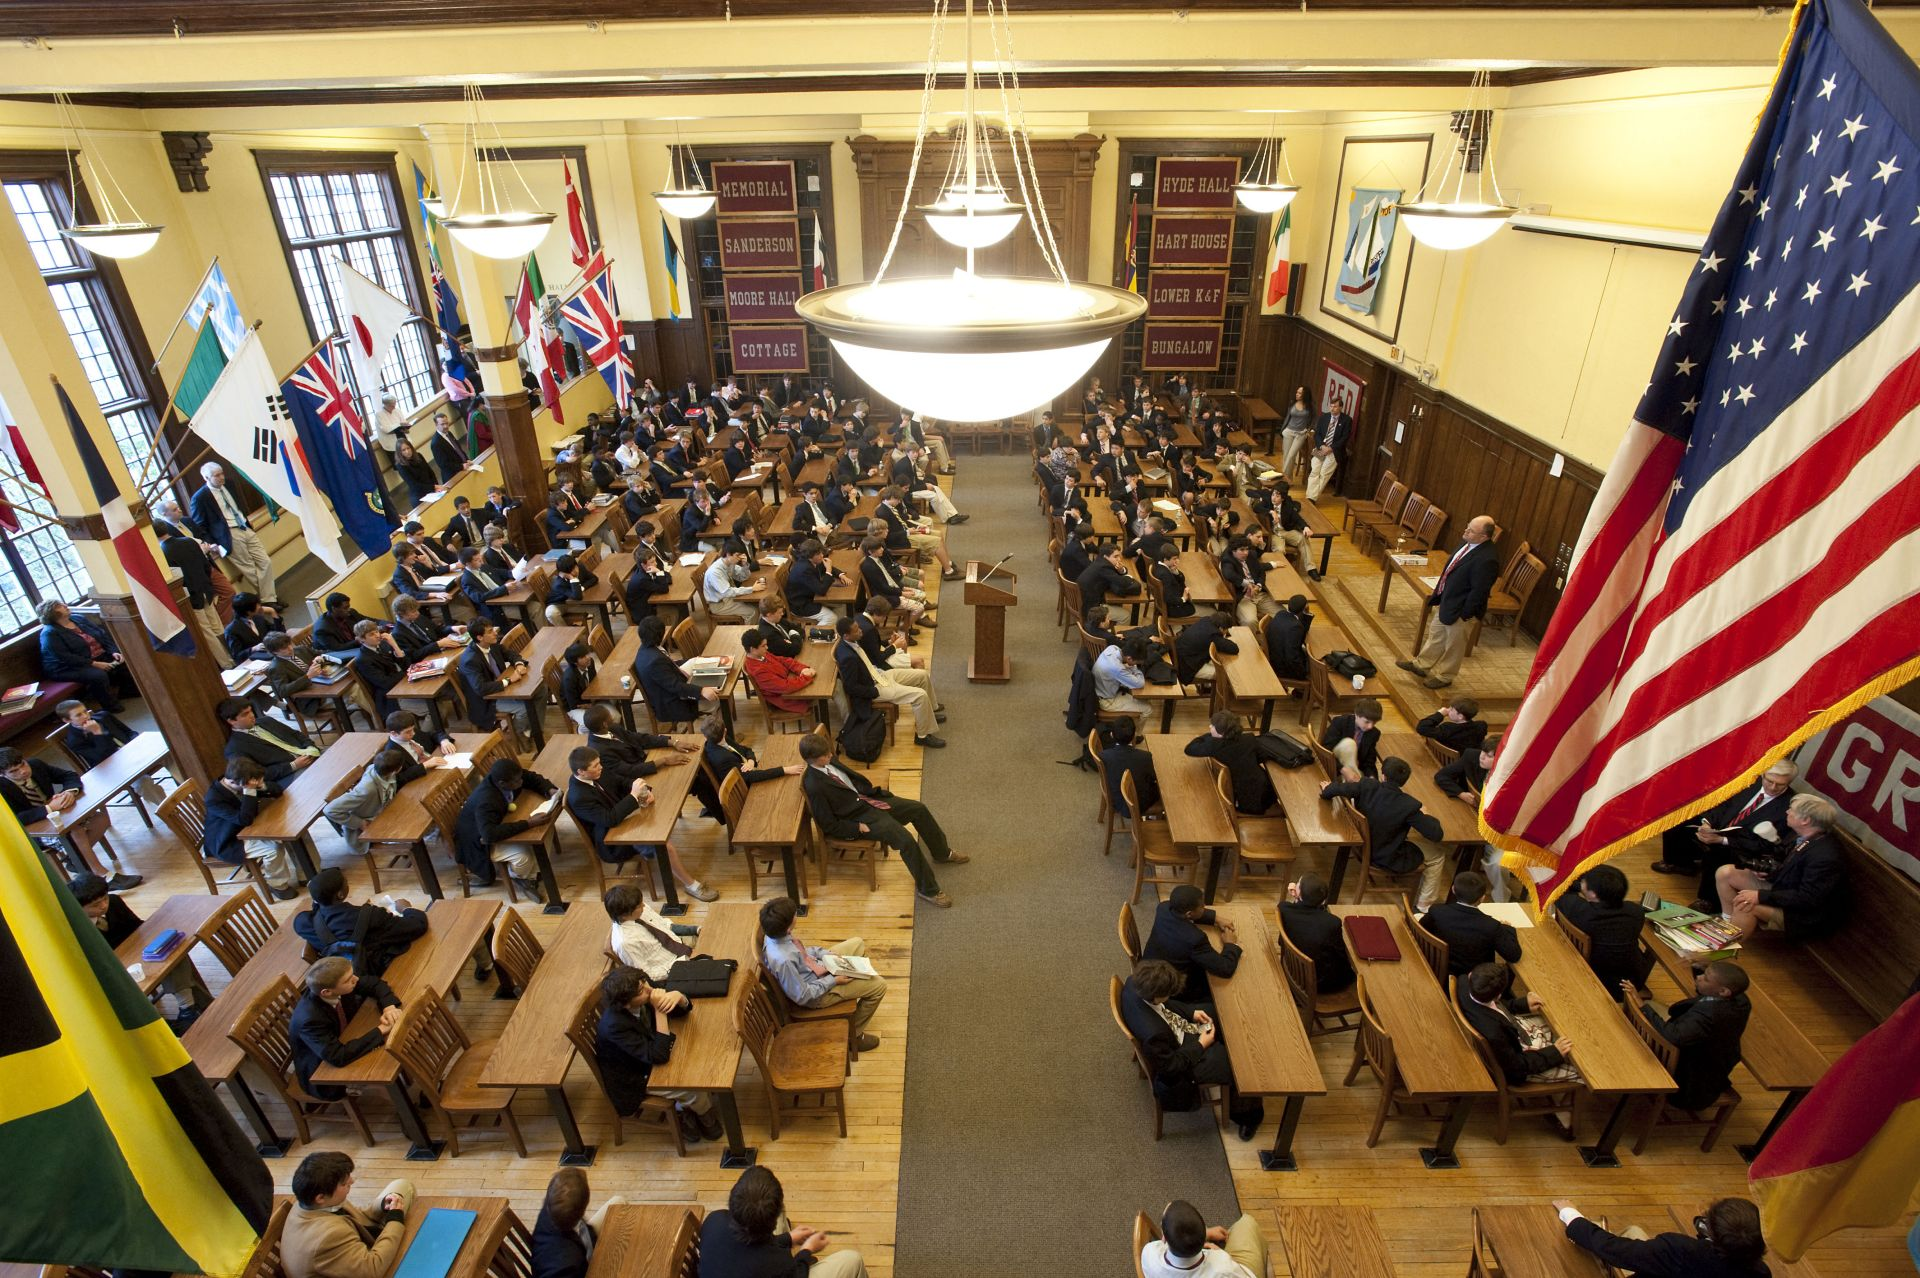 The Schoolroom: Located in Memorial Hall since 1920, the Schoolroom is the site of Upper School morning meeting at the start of each school day.